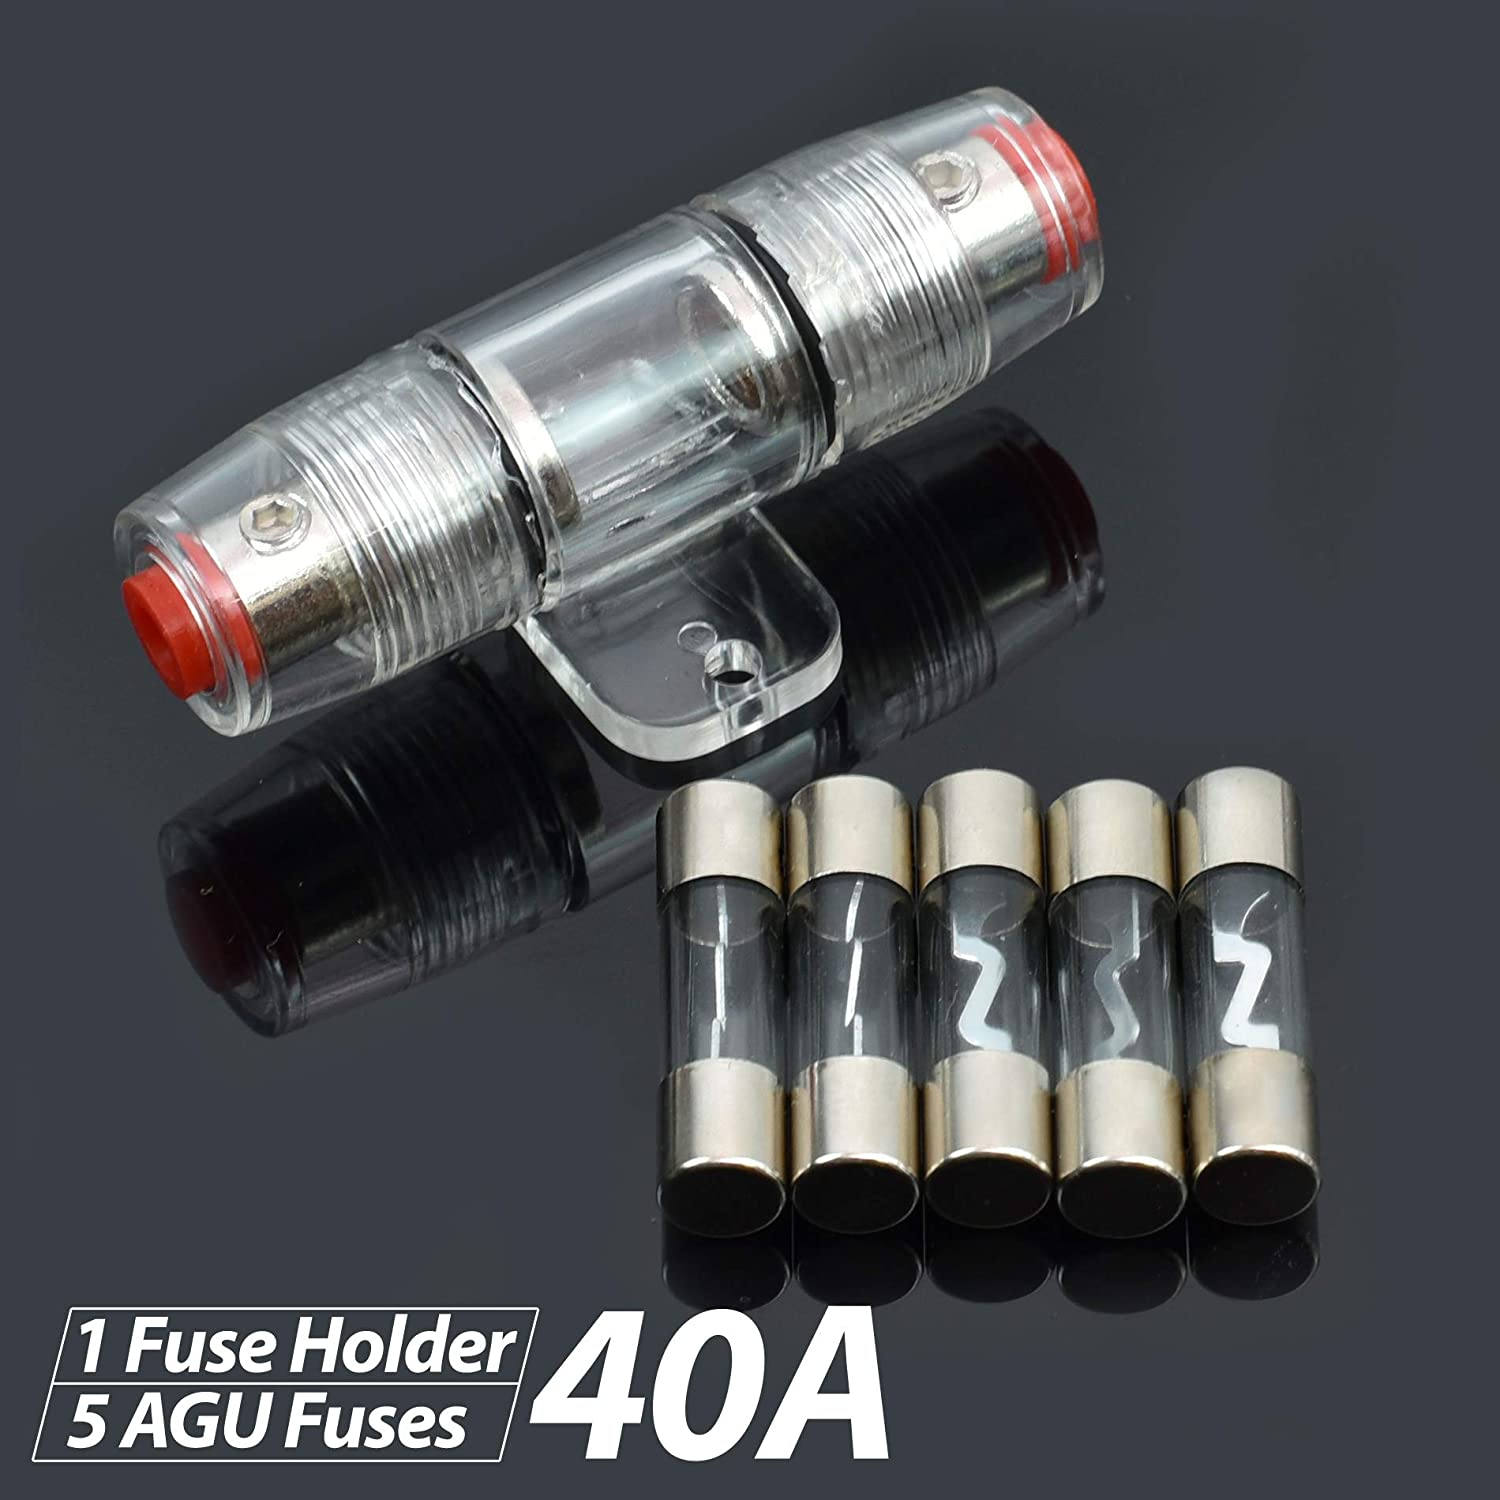 80 Amp Conext Link FHZ1U80-5 1pc 4 8 AWG AGU Fuse Holder with 5pcs Fuses Zinc Die Cast Nickel Plated